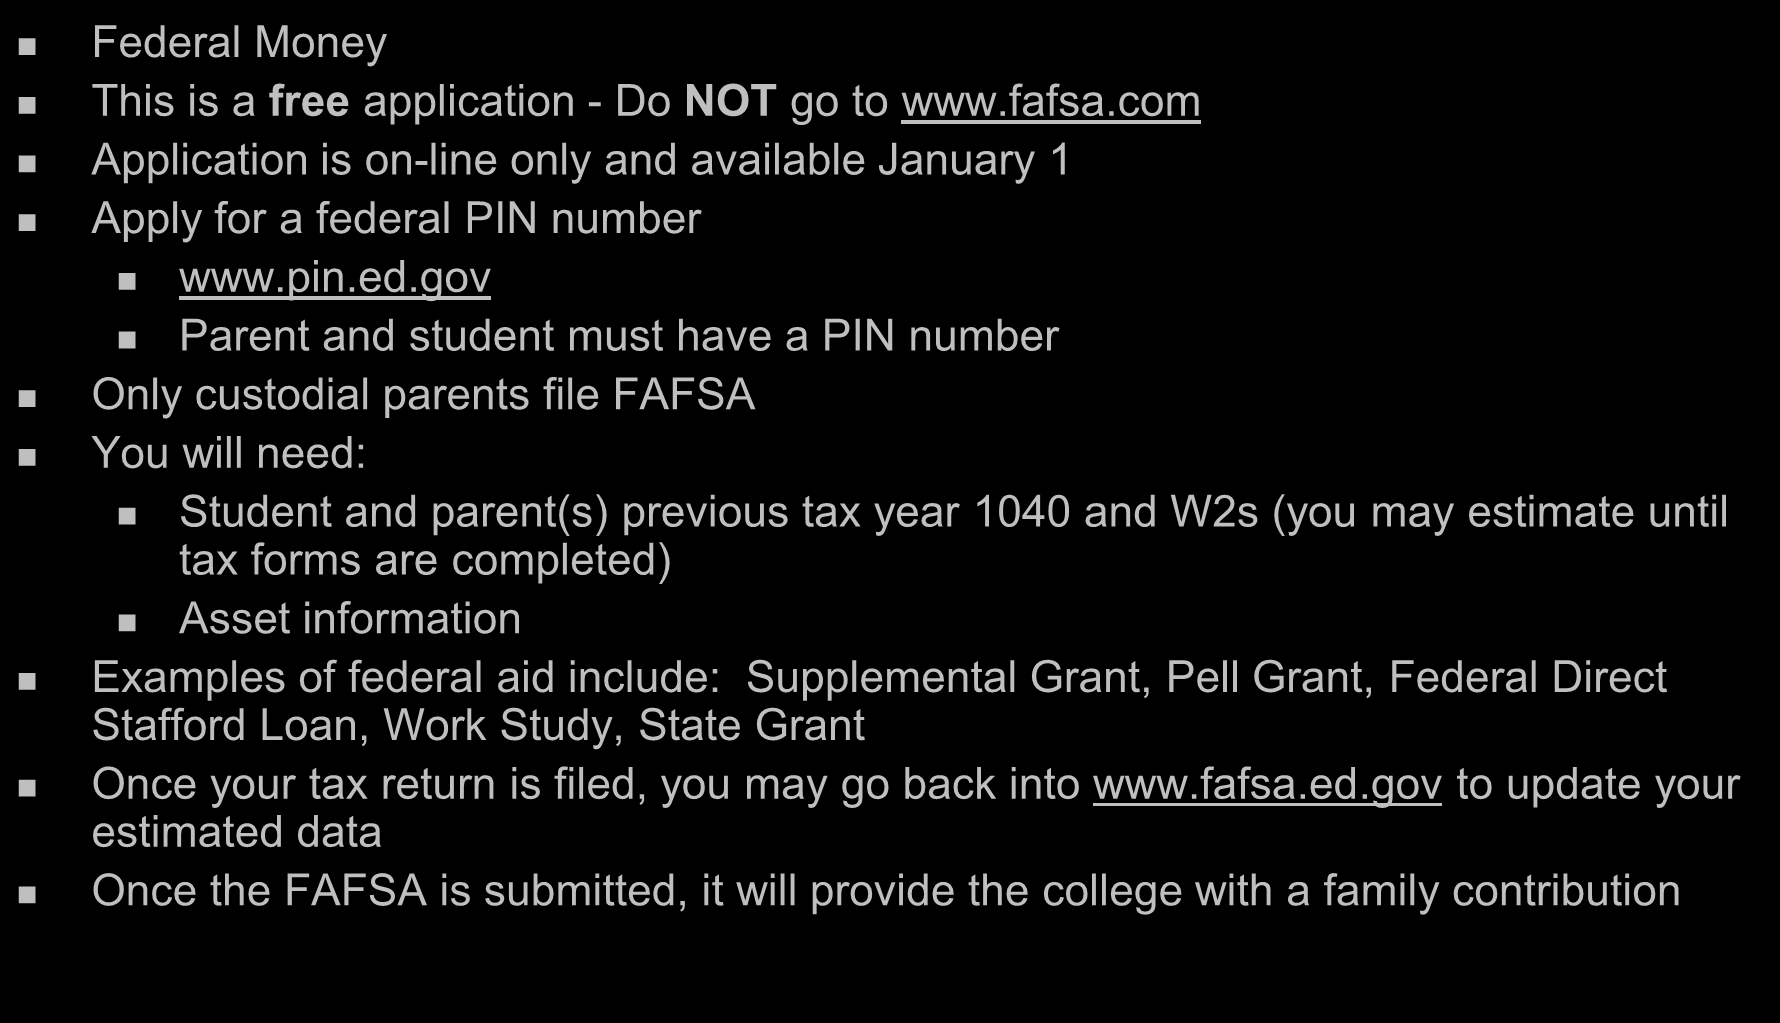 Free Application for Federal Student Aid www.fafsa.ed.gov Federal Money This is a free application - Do NOT go to www.fafsa.com Application is on-line only and available January 1 Apply for a federal PIN number www.